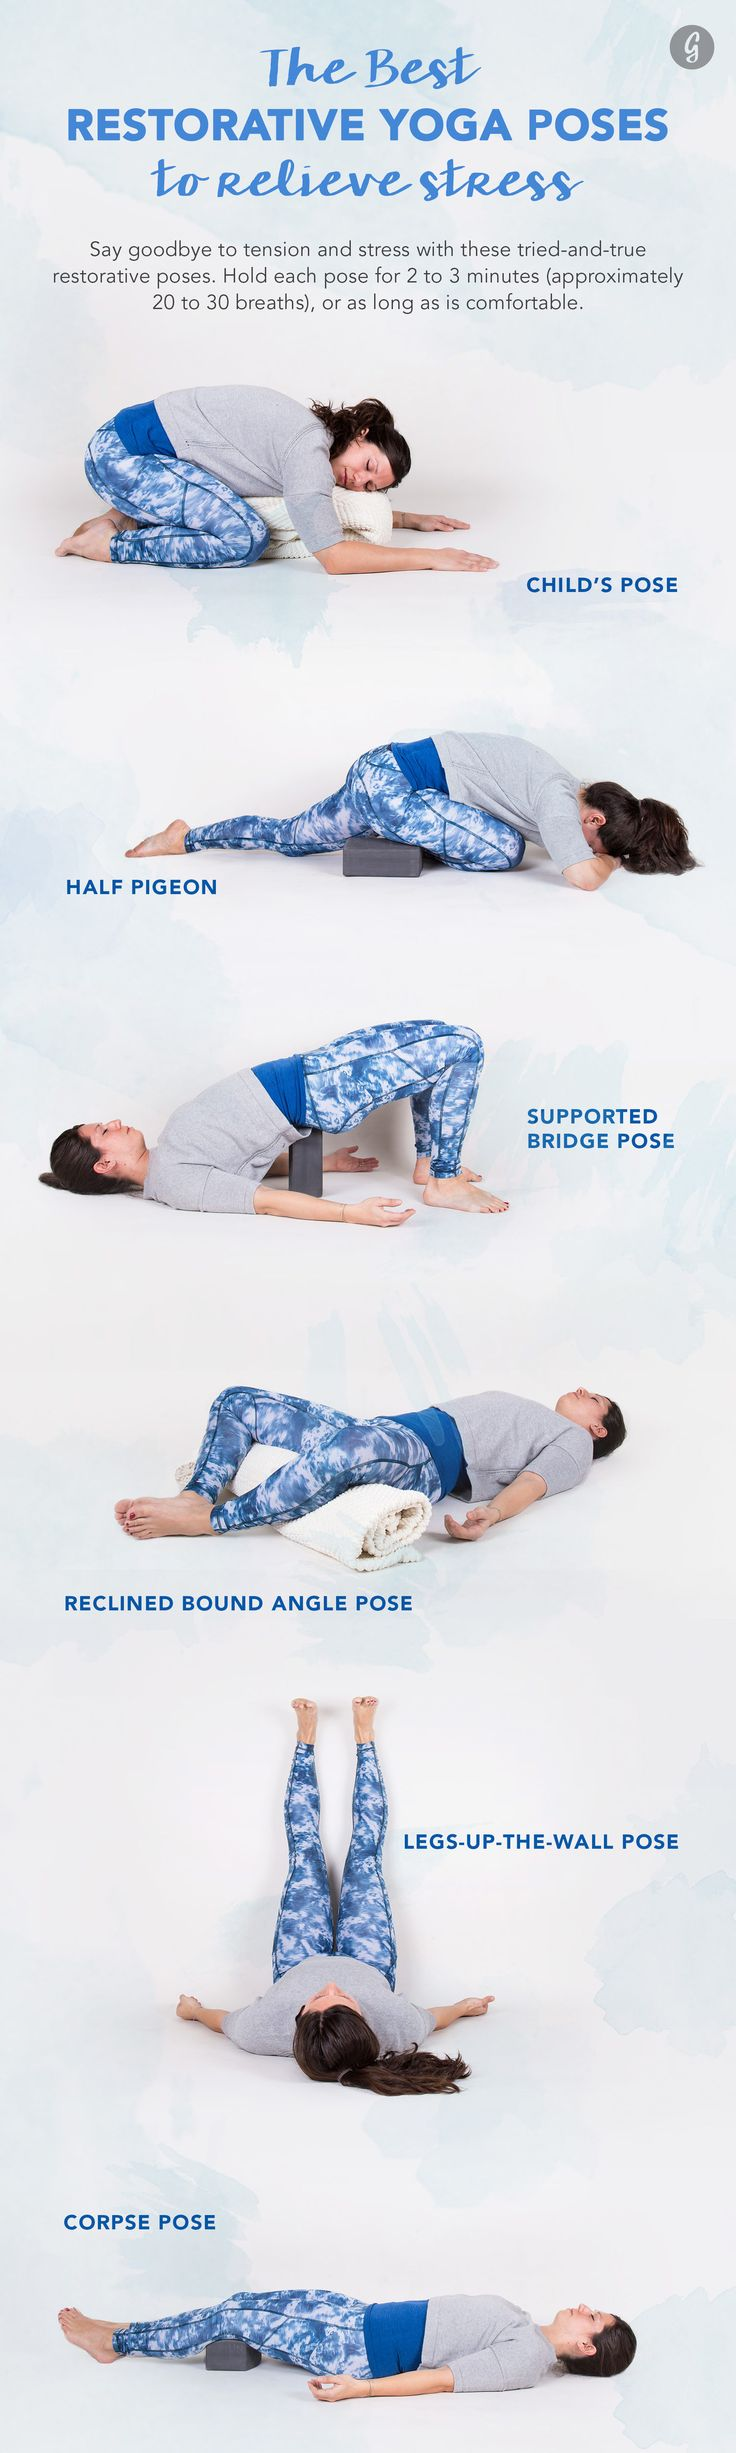 Relaxation is just a few deep breaths away. #restorative #yoga https://greatist.com/fitness/restorative-yoga-infographic